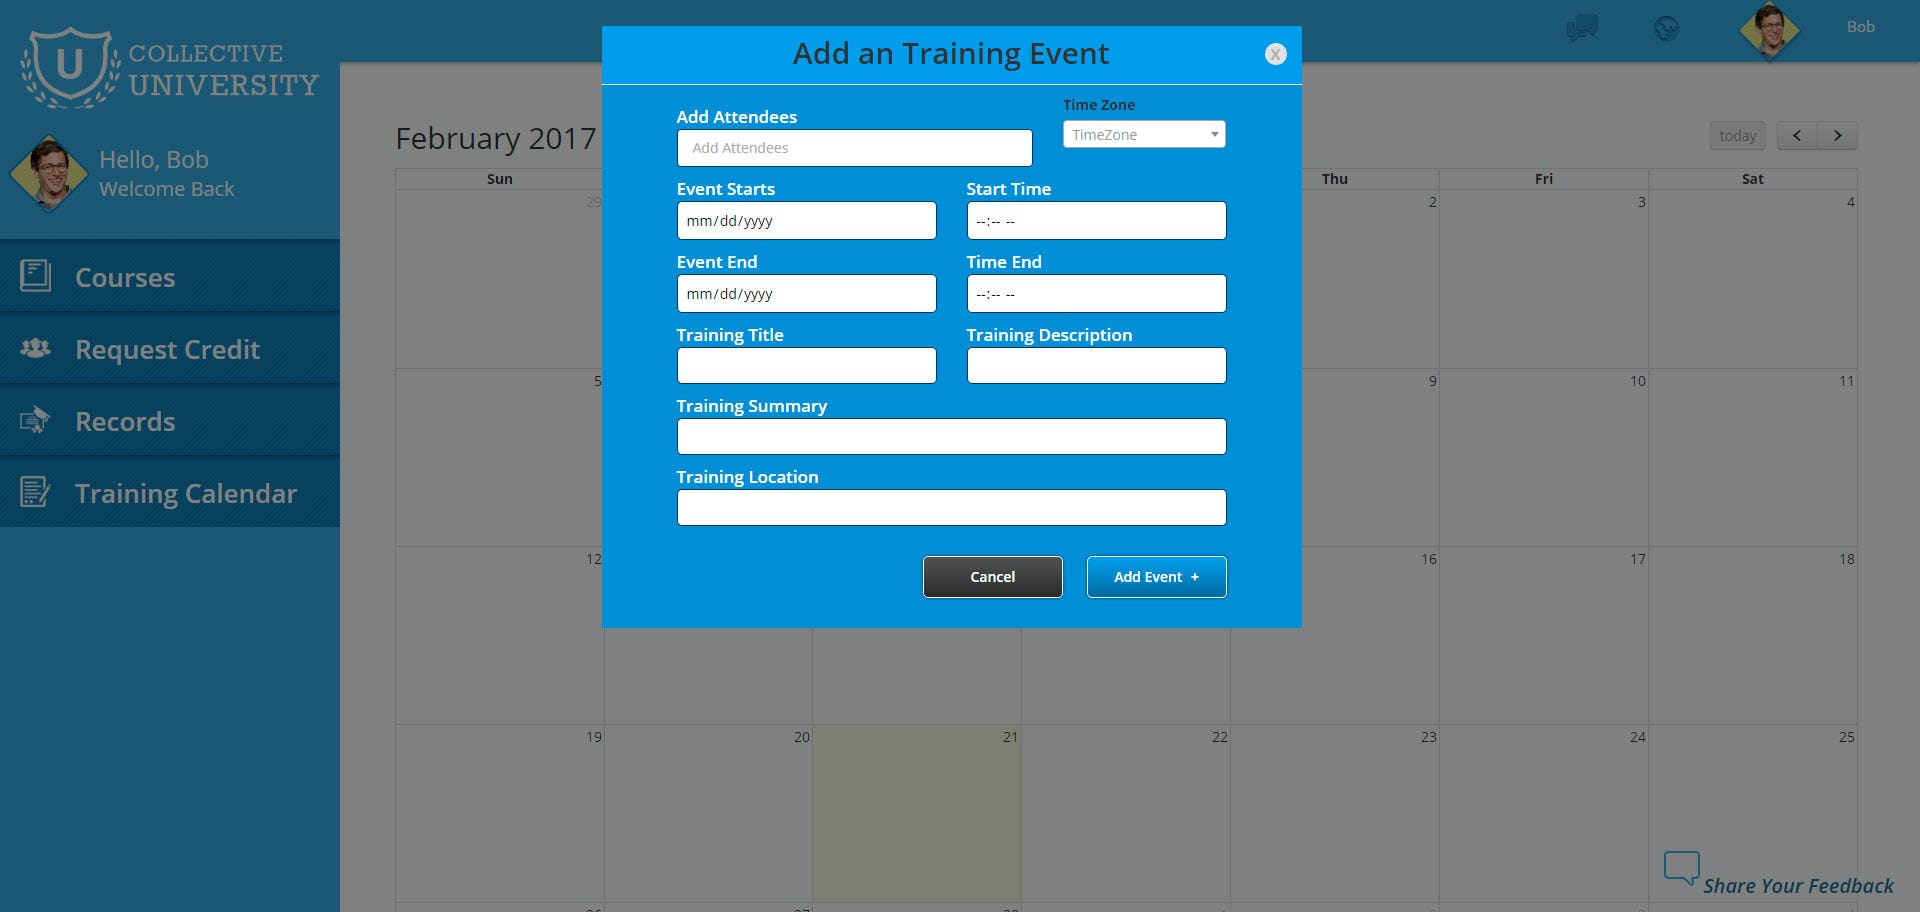 Collective University Software - Add training events